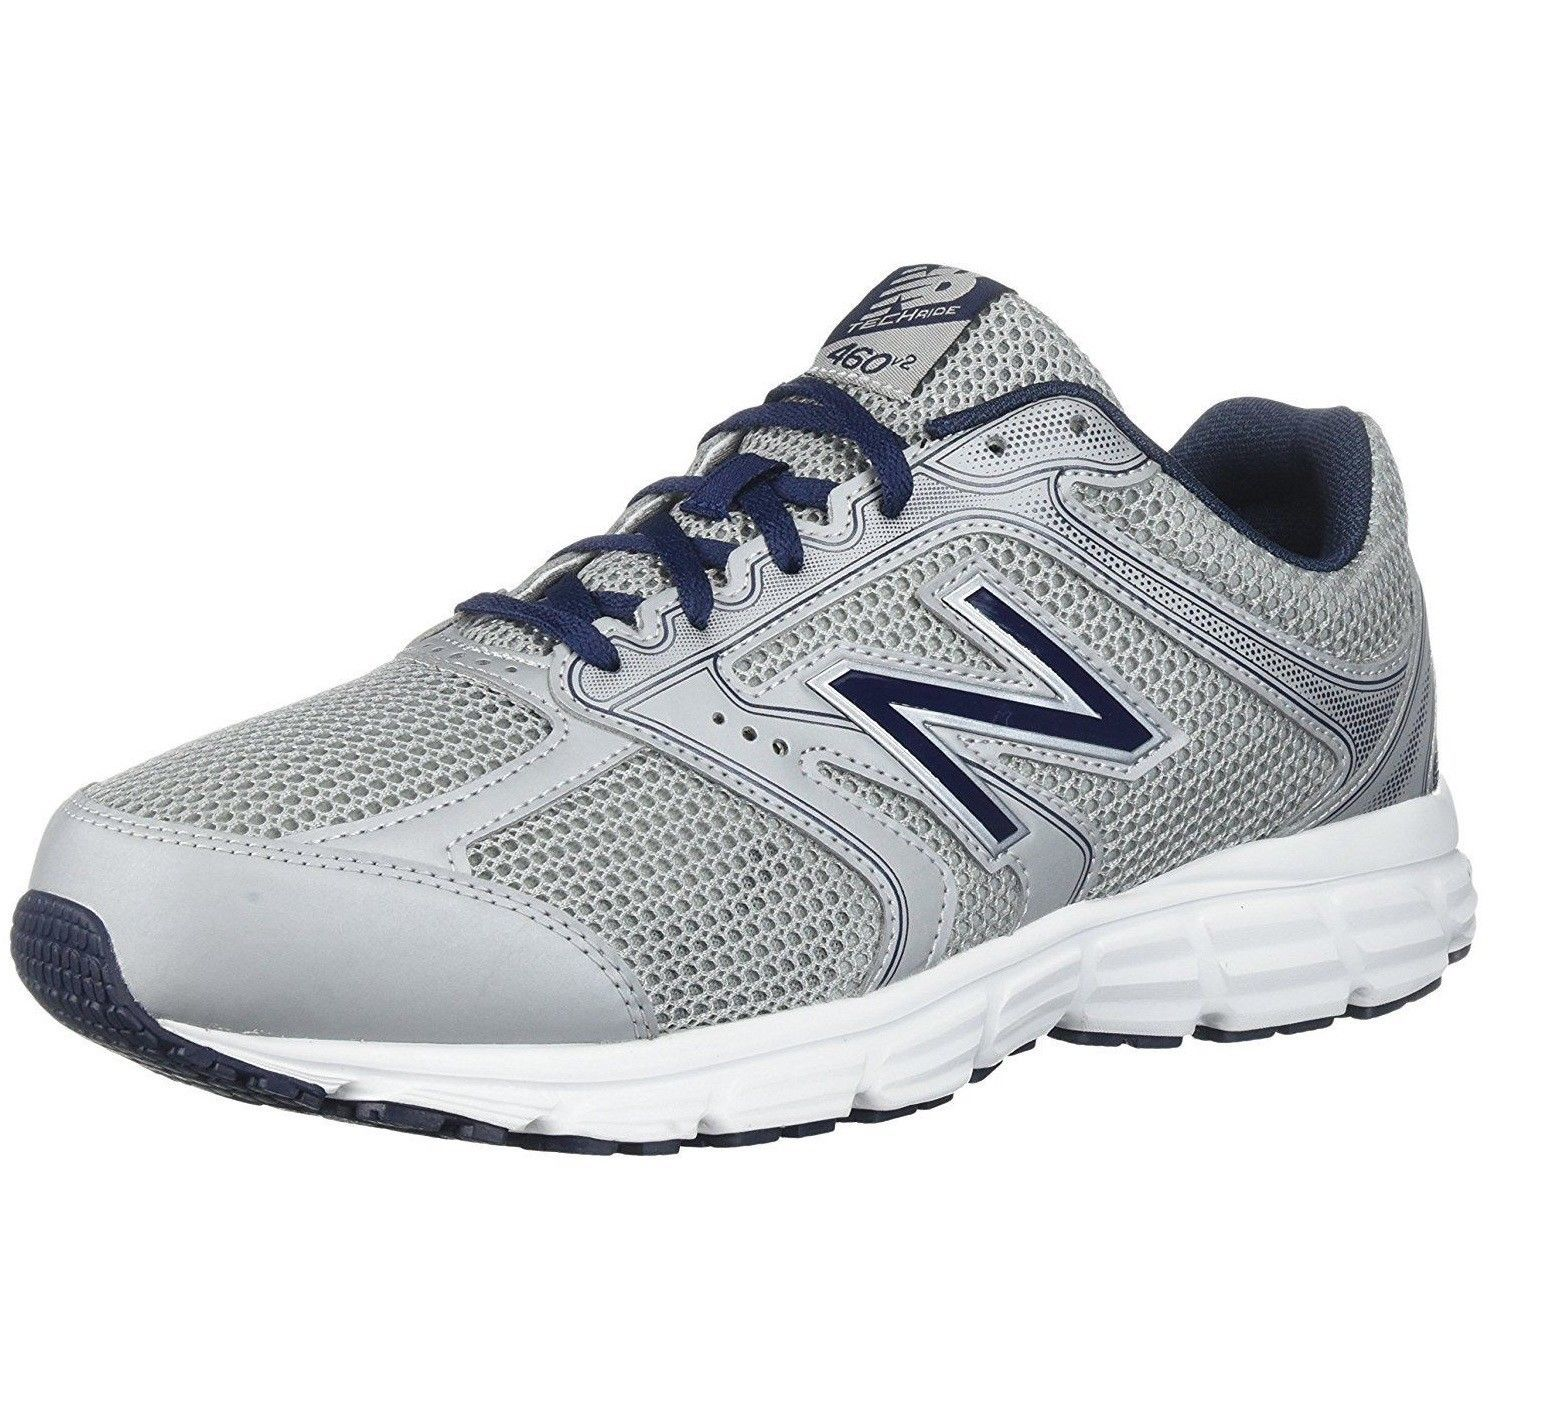 New Balance 460v2 Grey Running Shoes Men's Size 10 M460LC2 image 3